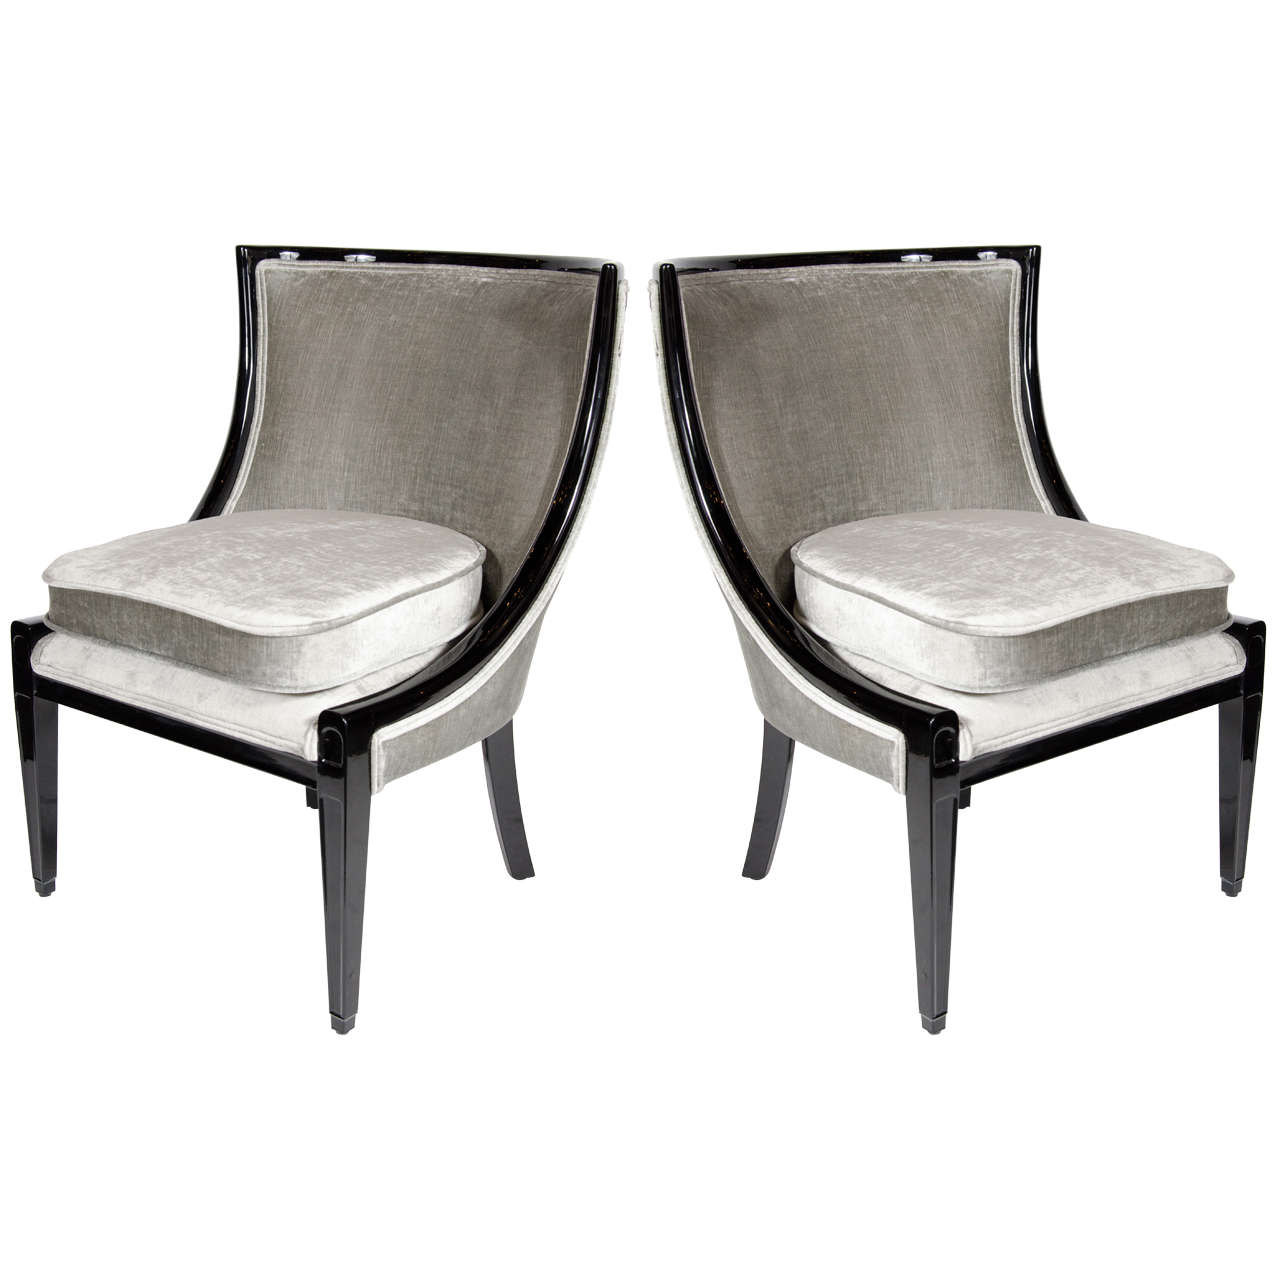 Luxe pair of klismos chairs with curved back design at 1stdibs